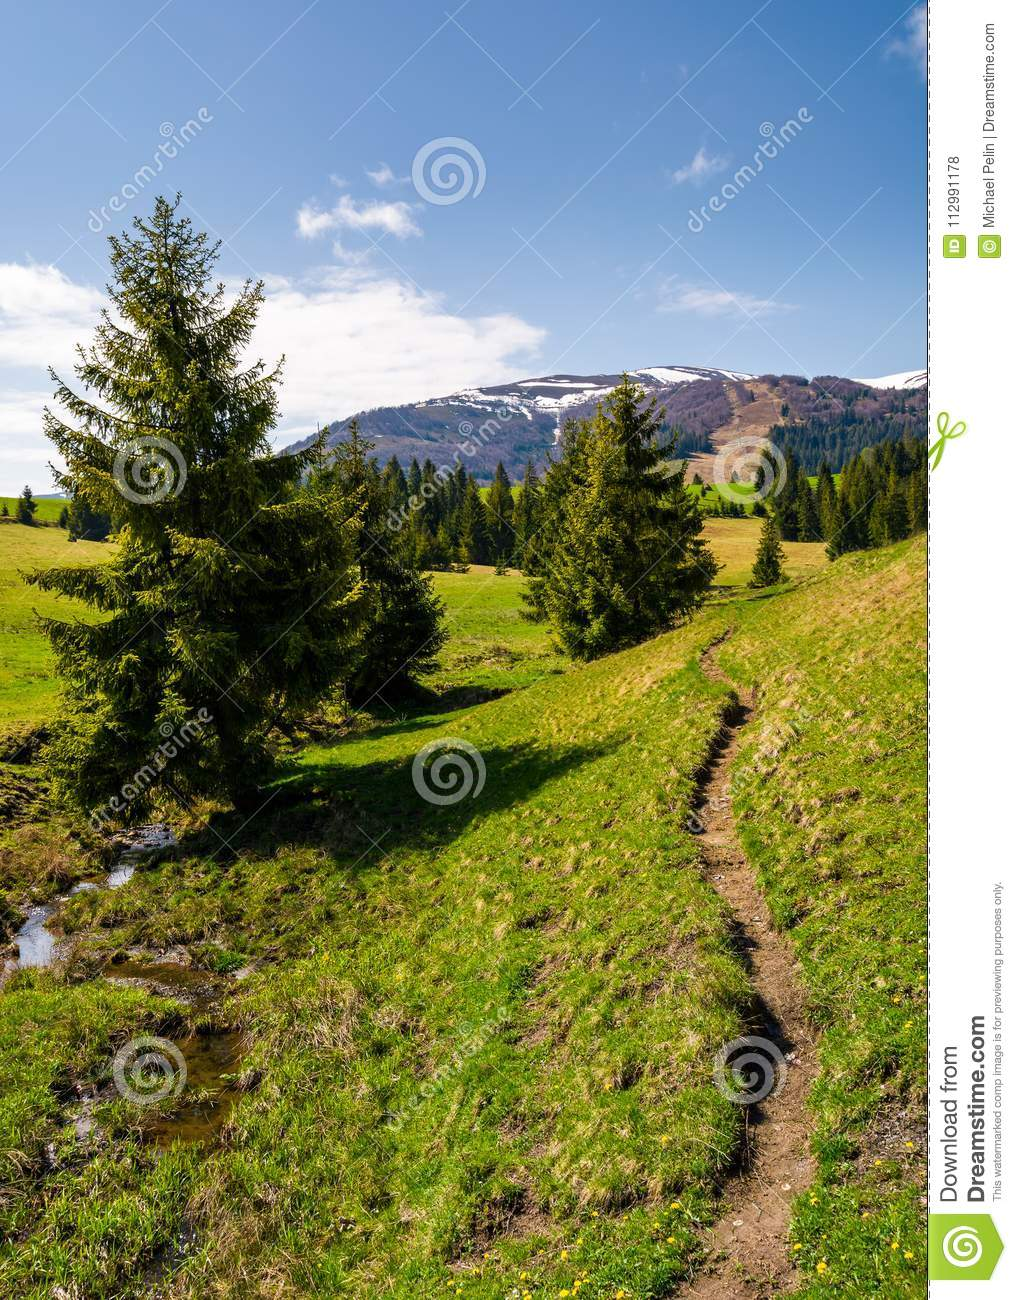 Narrow footpath along the forested hills